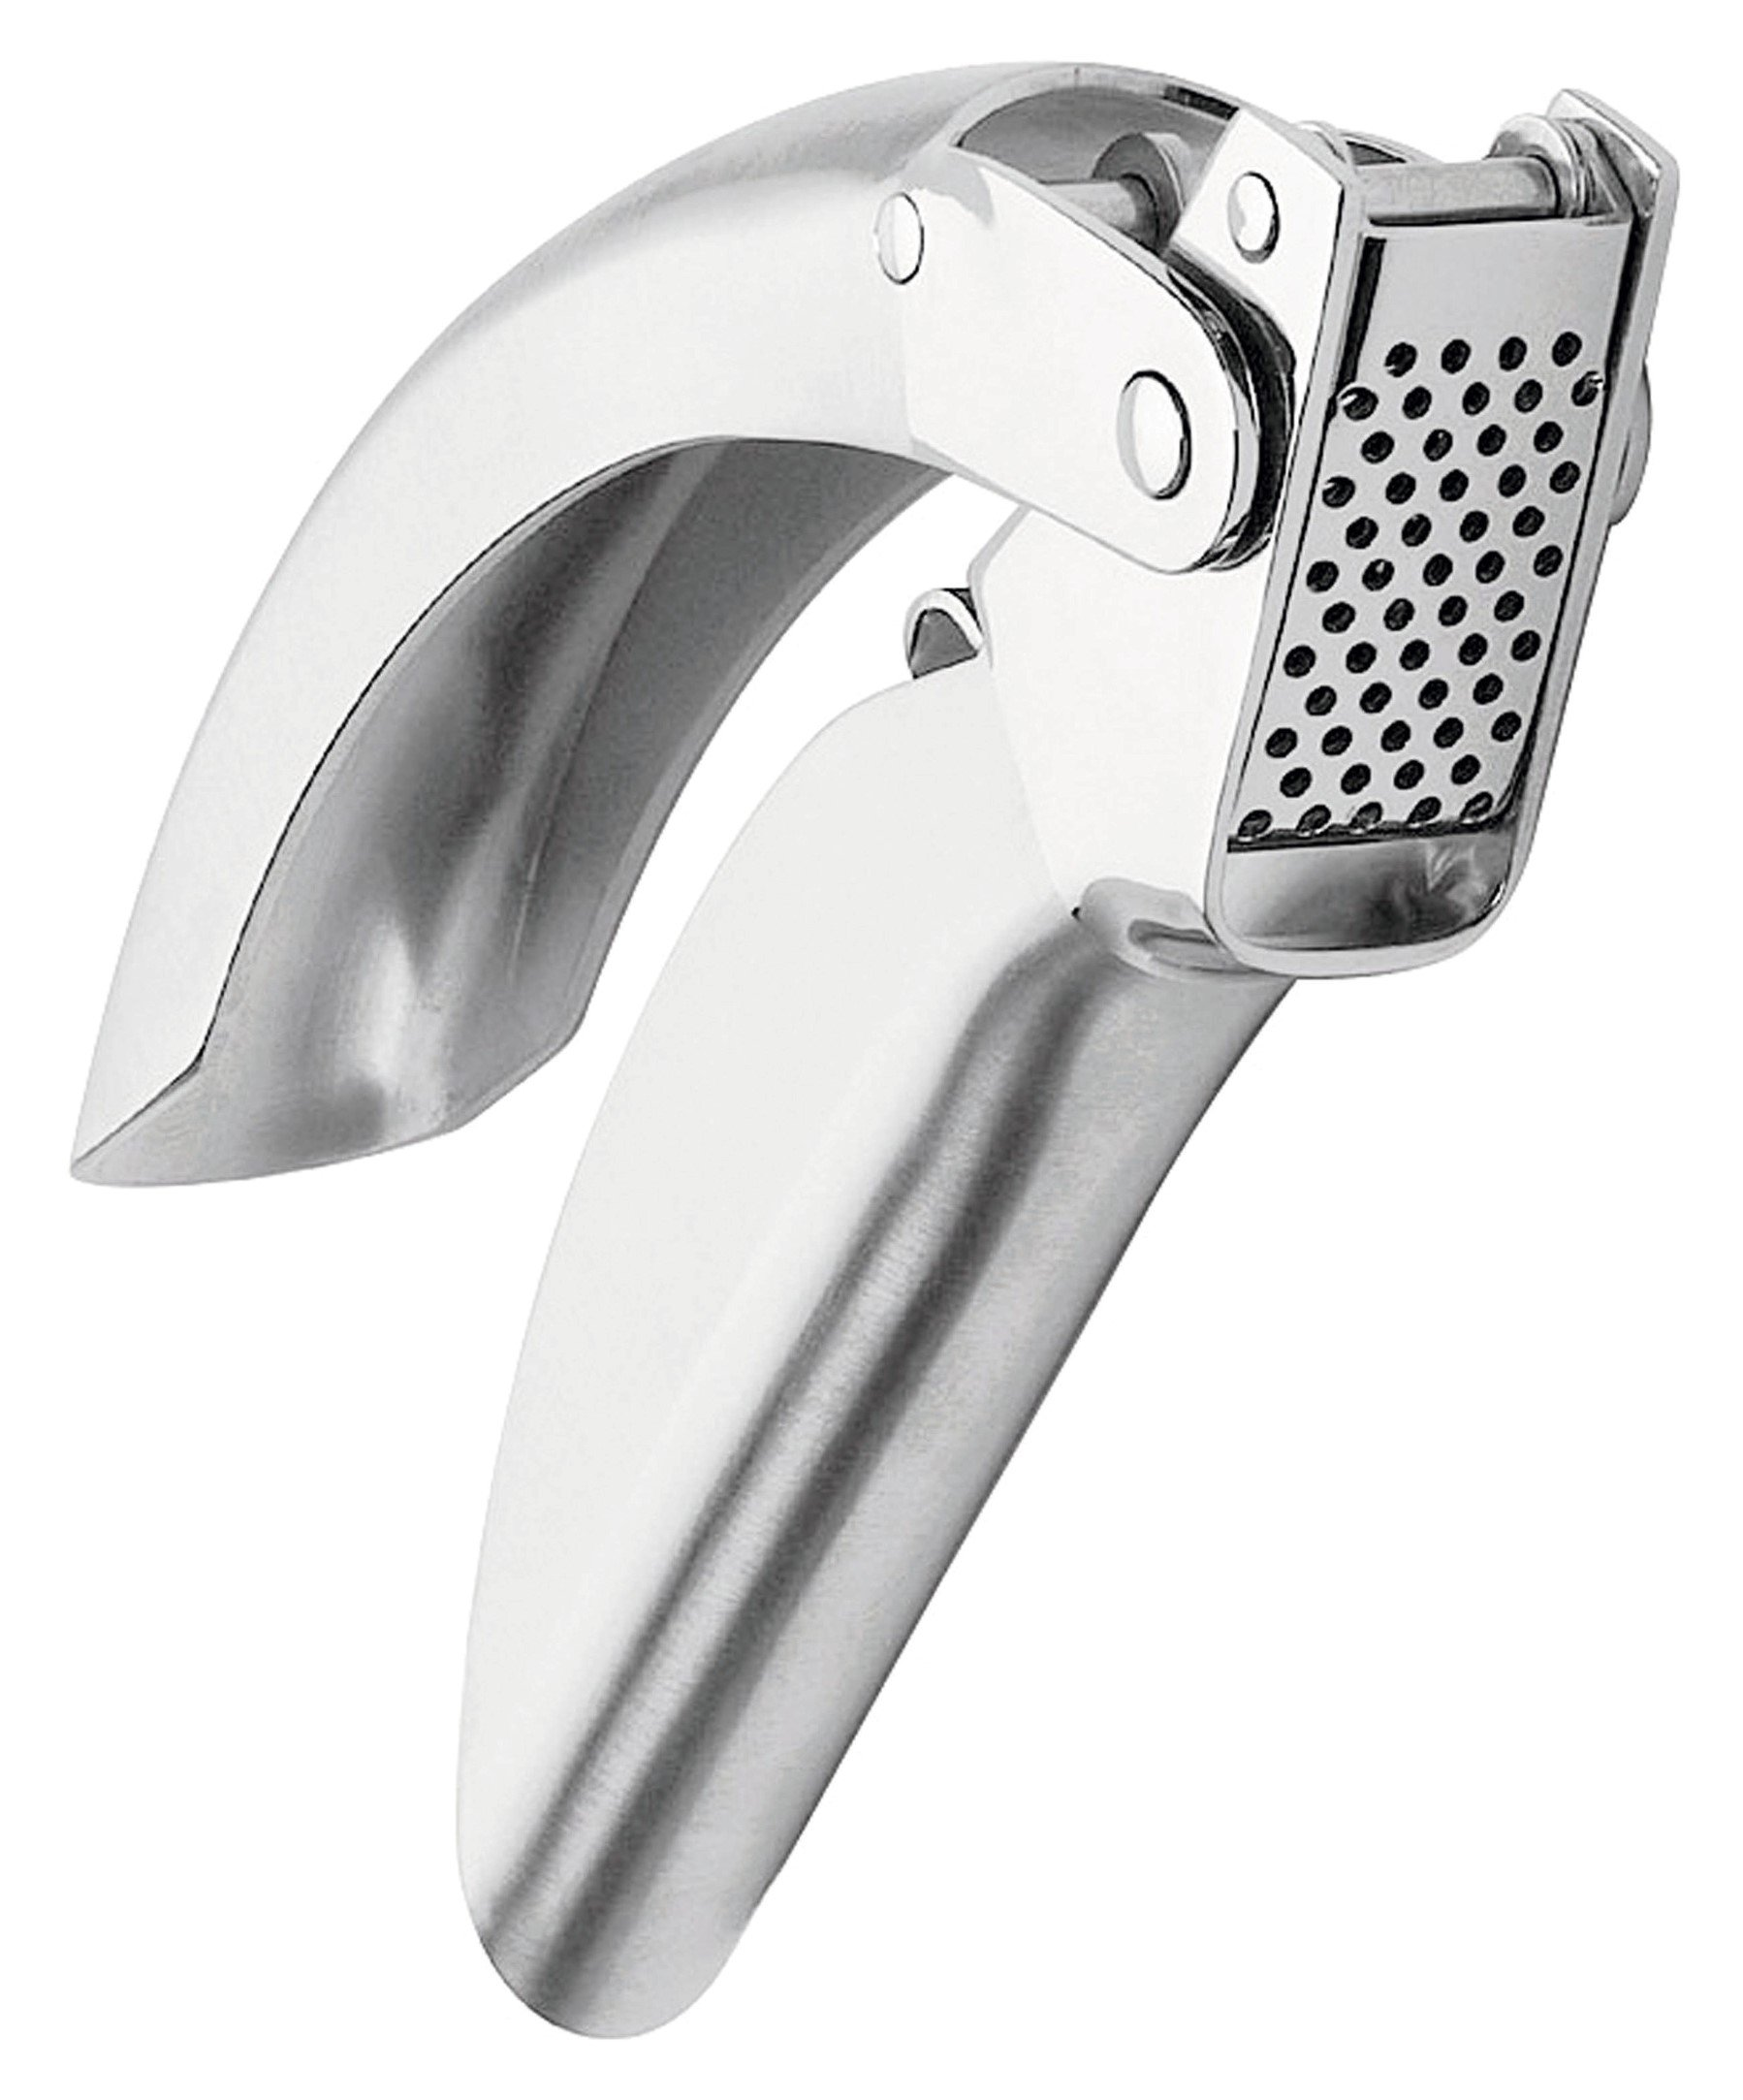 Kuhn Rikon Stainless Steel Epicurean Garlic Press